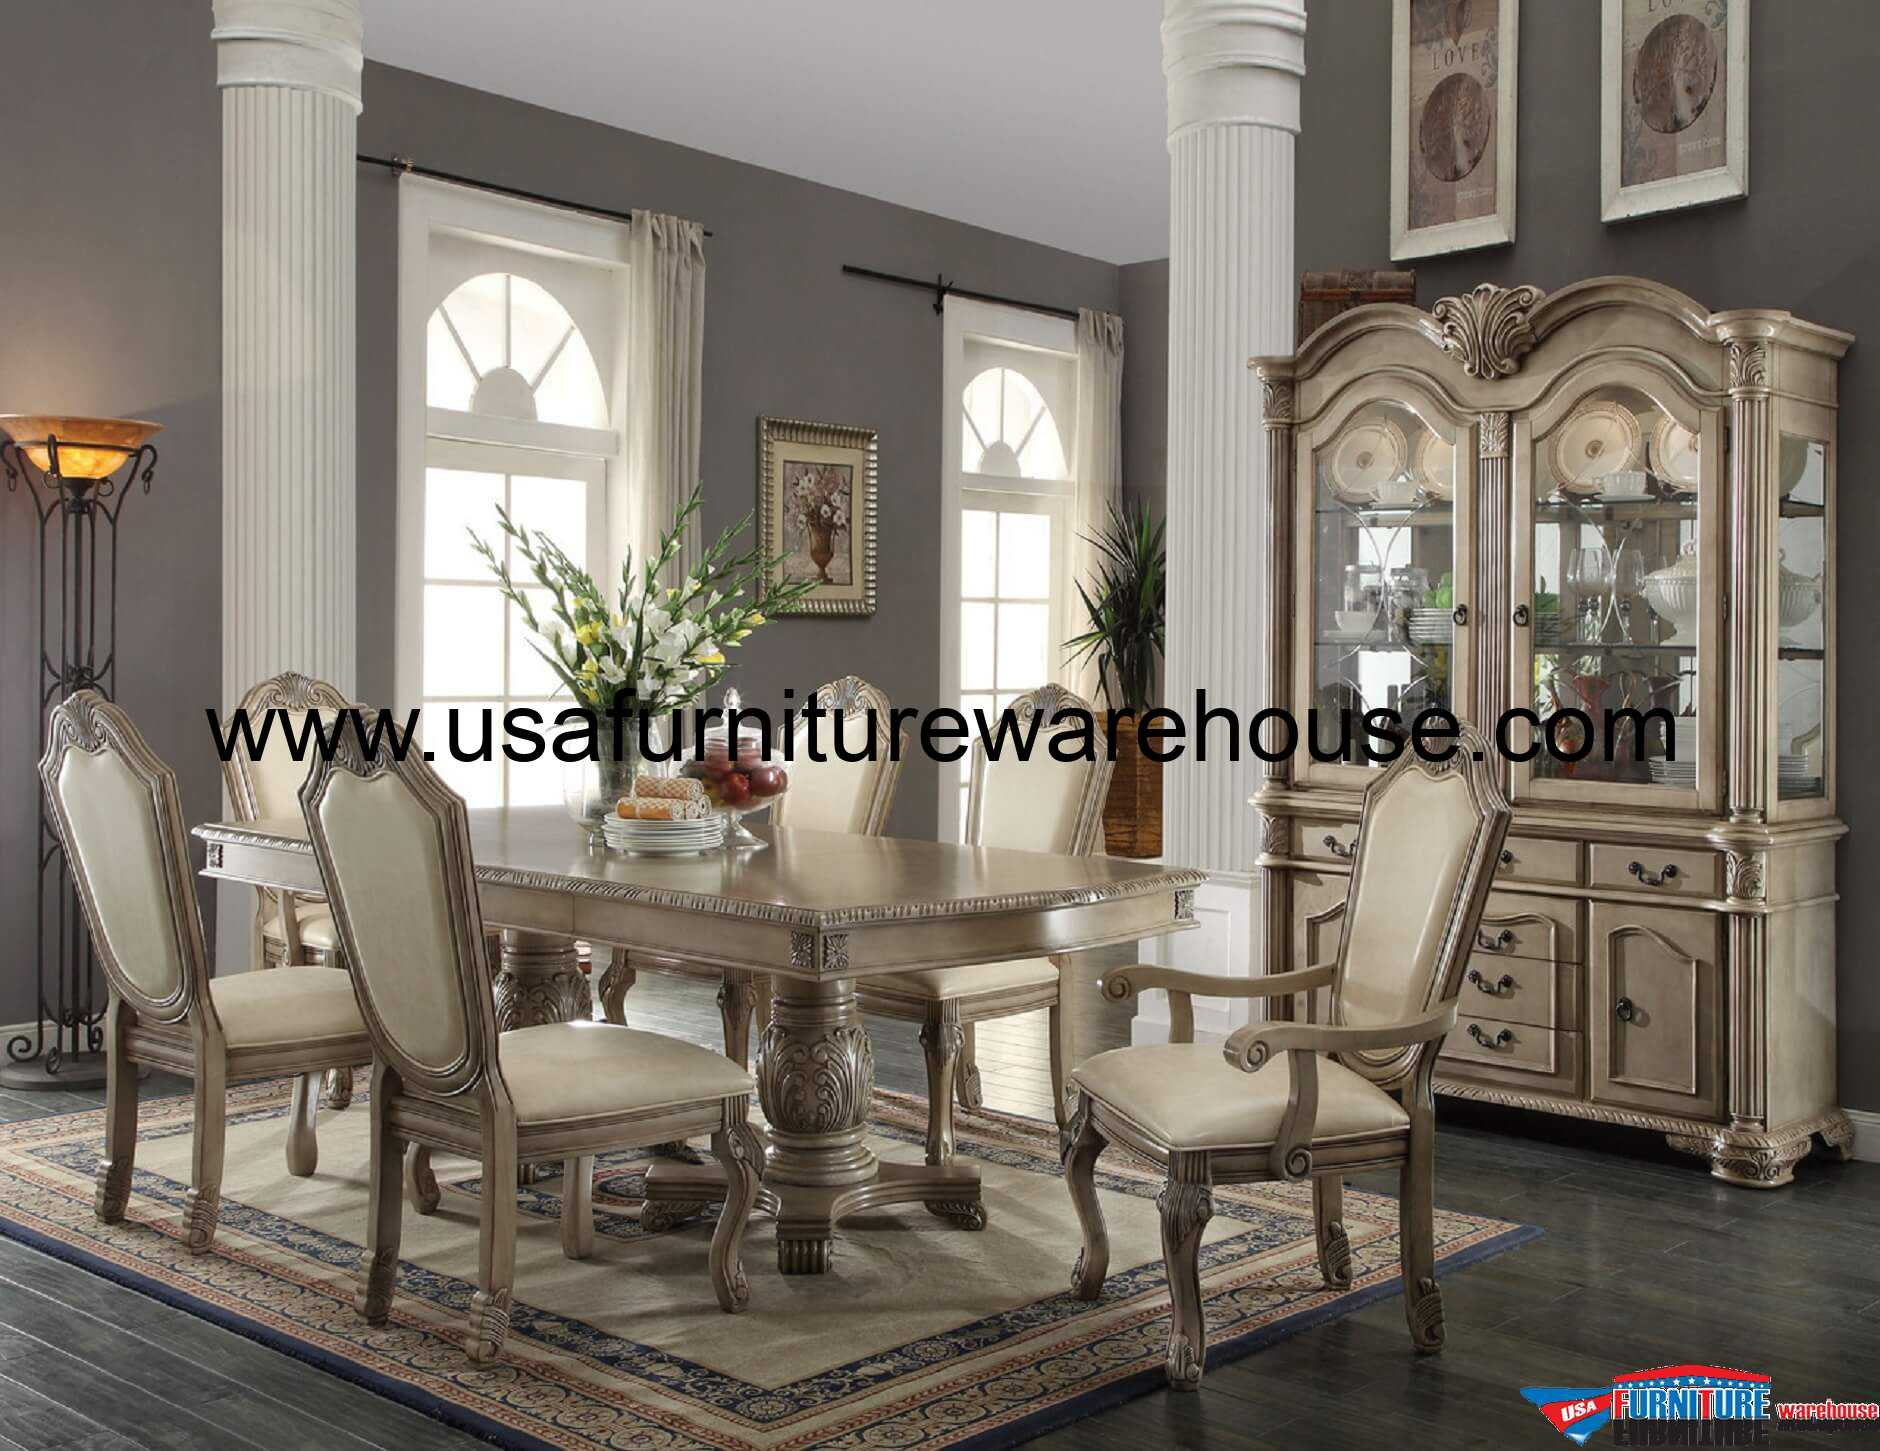 Fancy Dining Room Sets 9 Piece Acme Chateau De Ville Antique White Finish Dining Set